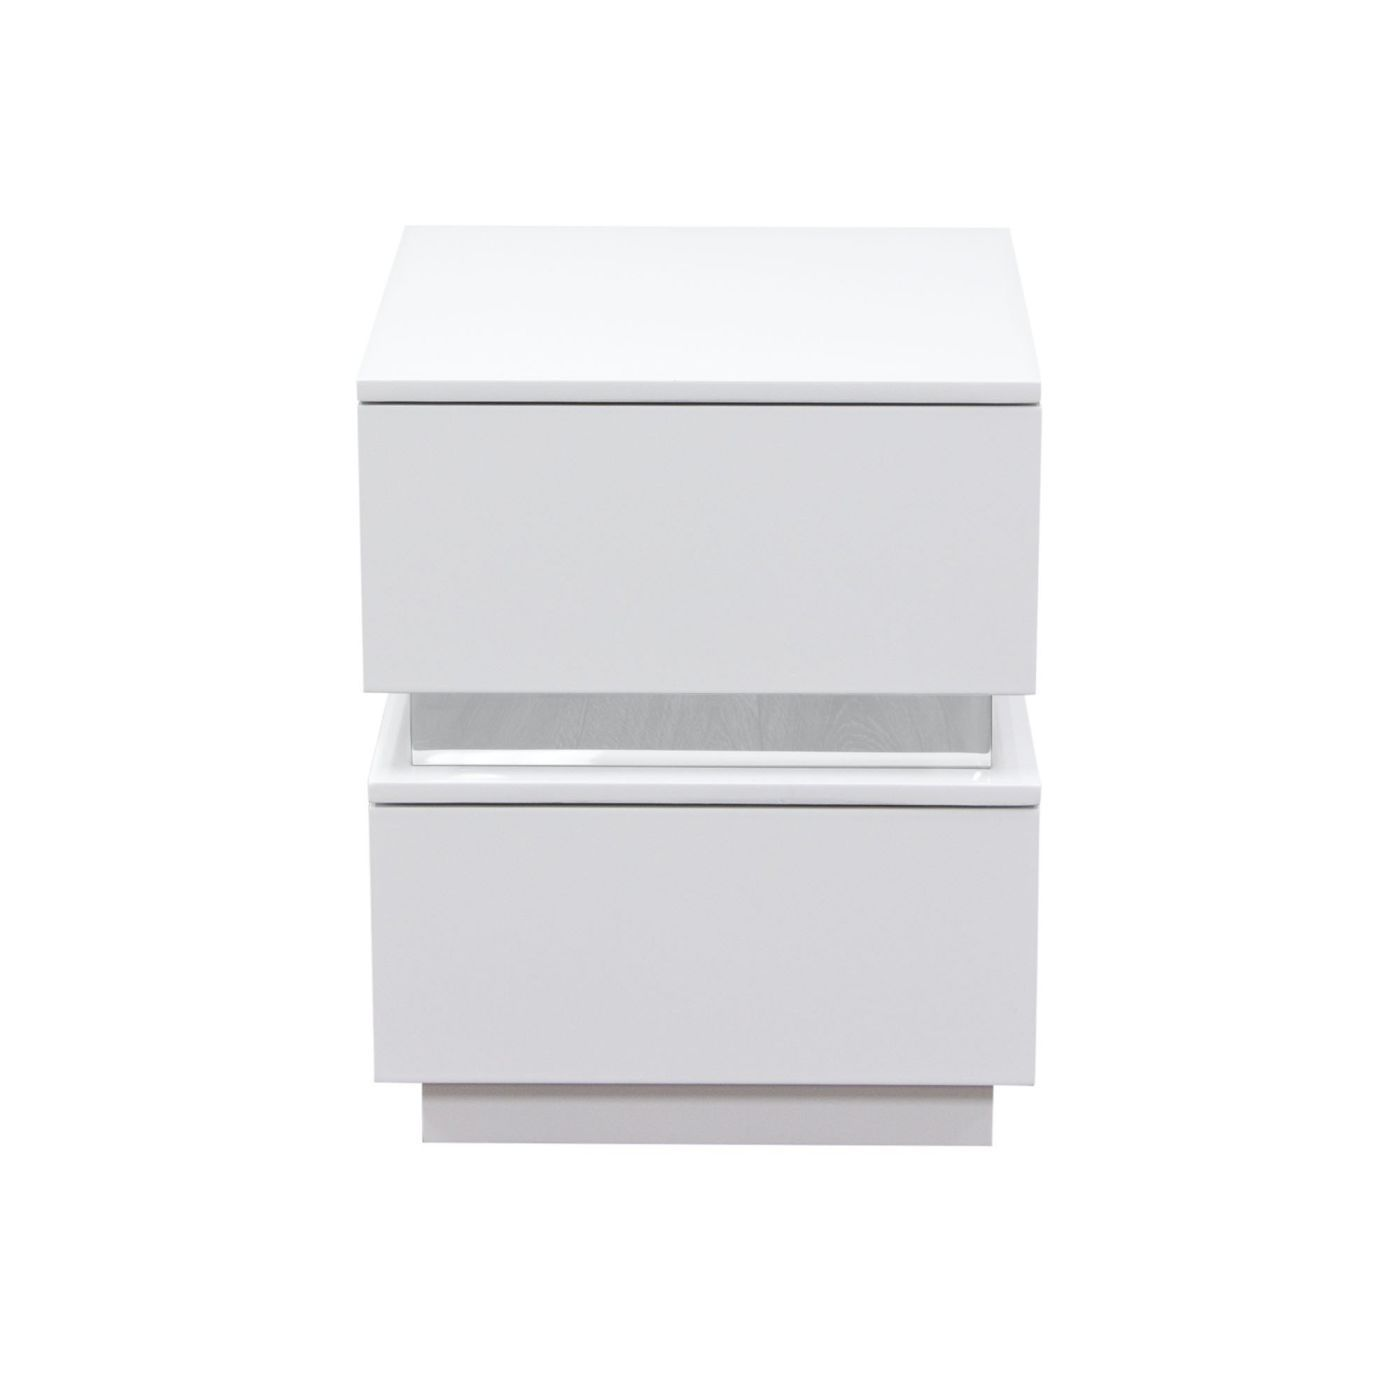 diamond sofa elle drawer accent table high gloss white nightstands ellenswh nightstand with drawers parsons desk wrought iron lamps garden chairs seat for drums counter height